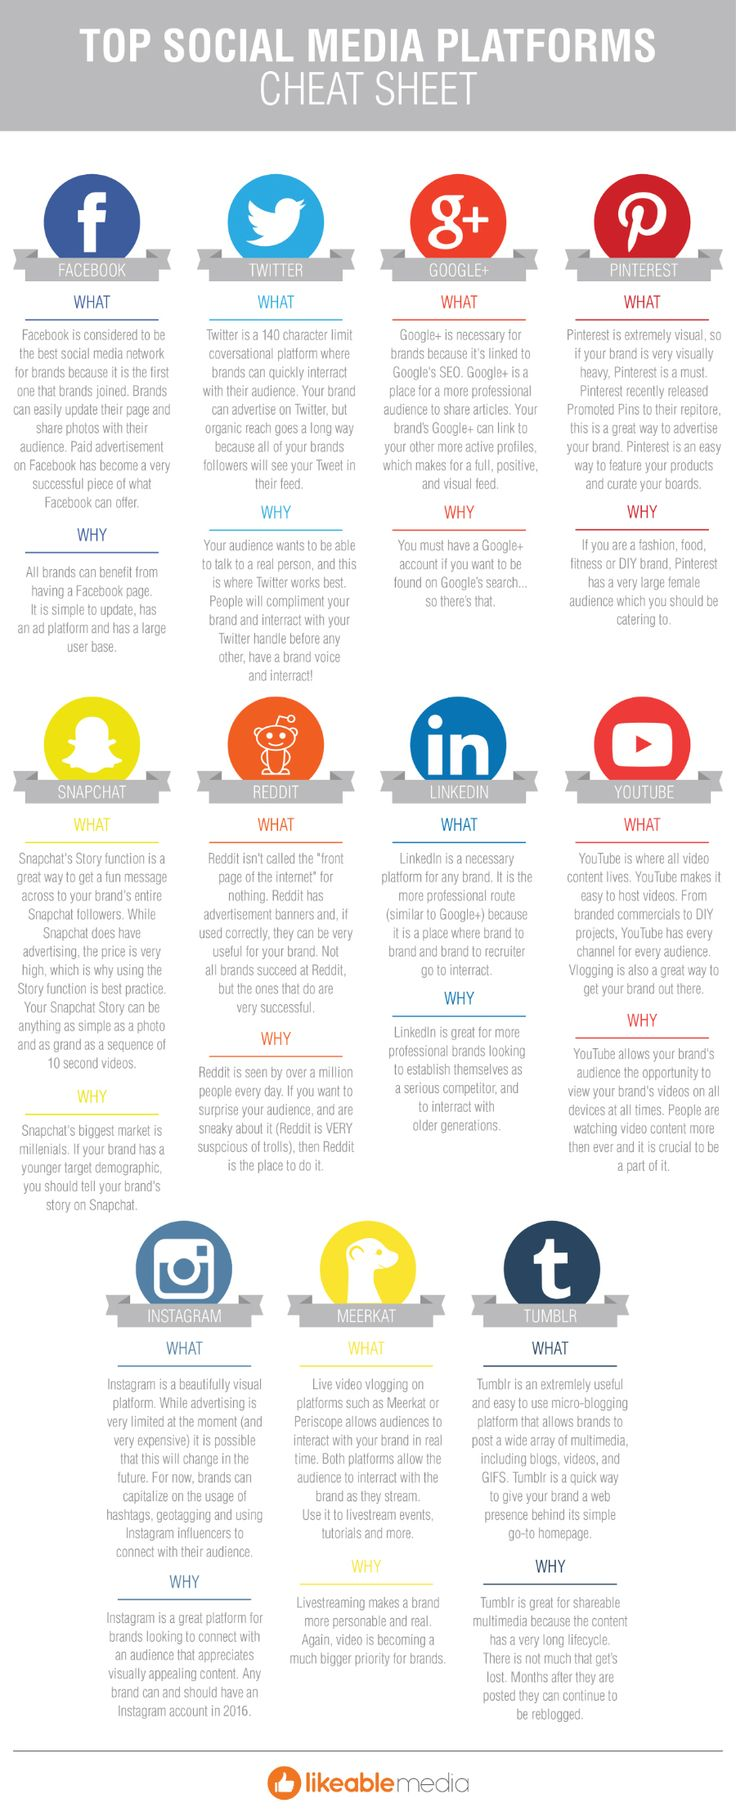 Need help deciding which social media sites are best for your small business? Here's the scoop on where your clientele may be hanging out.